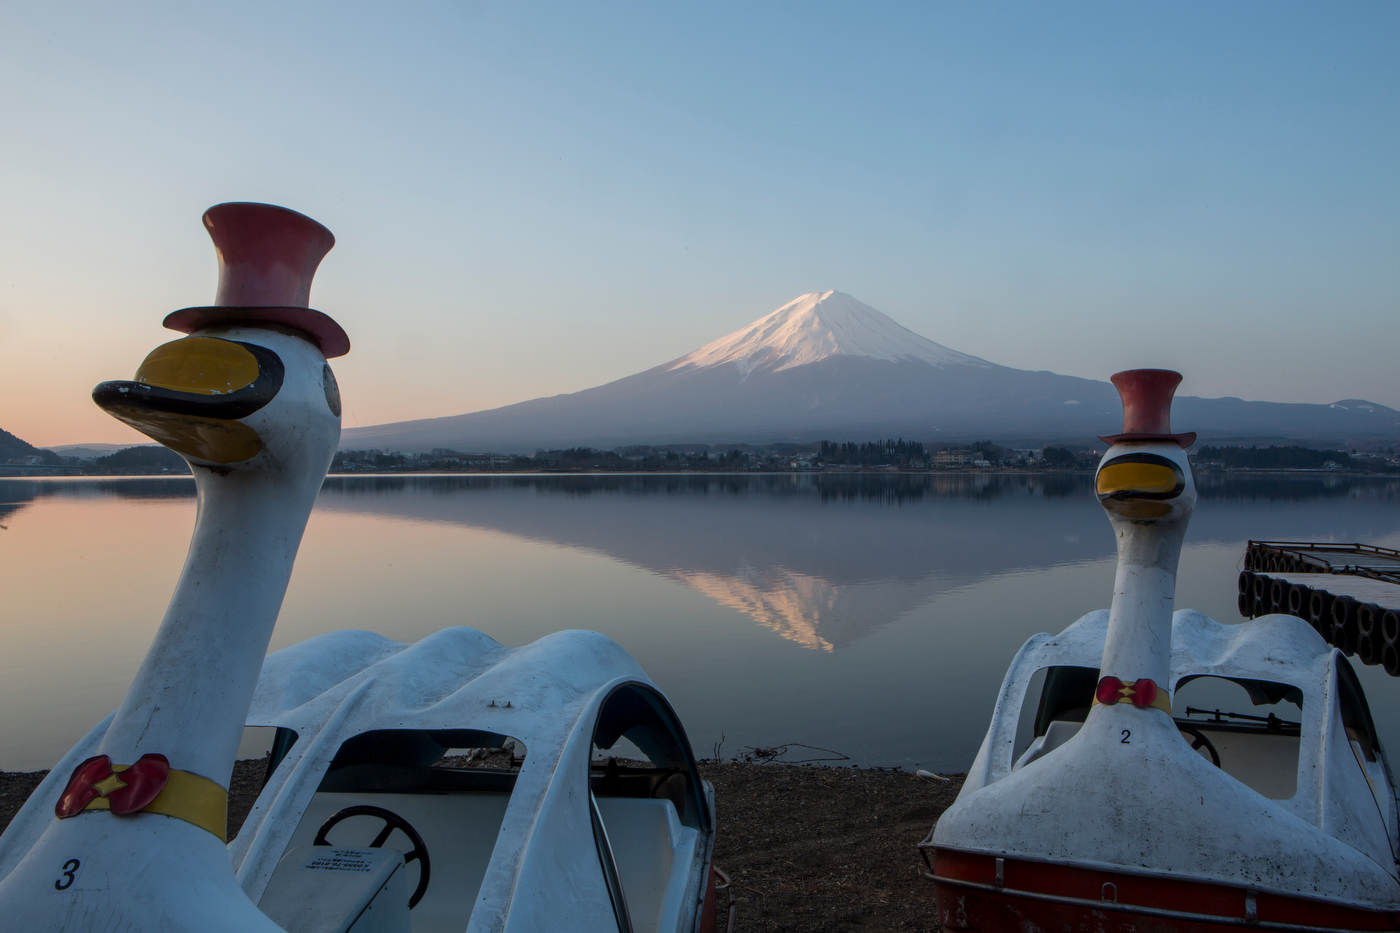 Framed by rental pedal boats, Mt. Fuji reflects in the waters of Lake Kawaguchiko at sunrise.